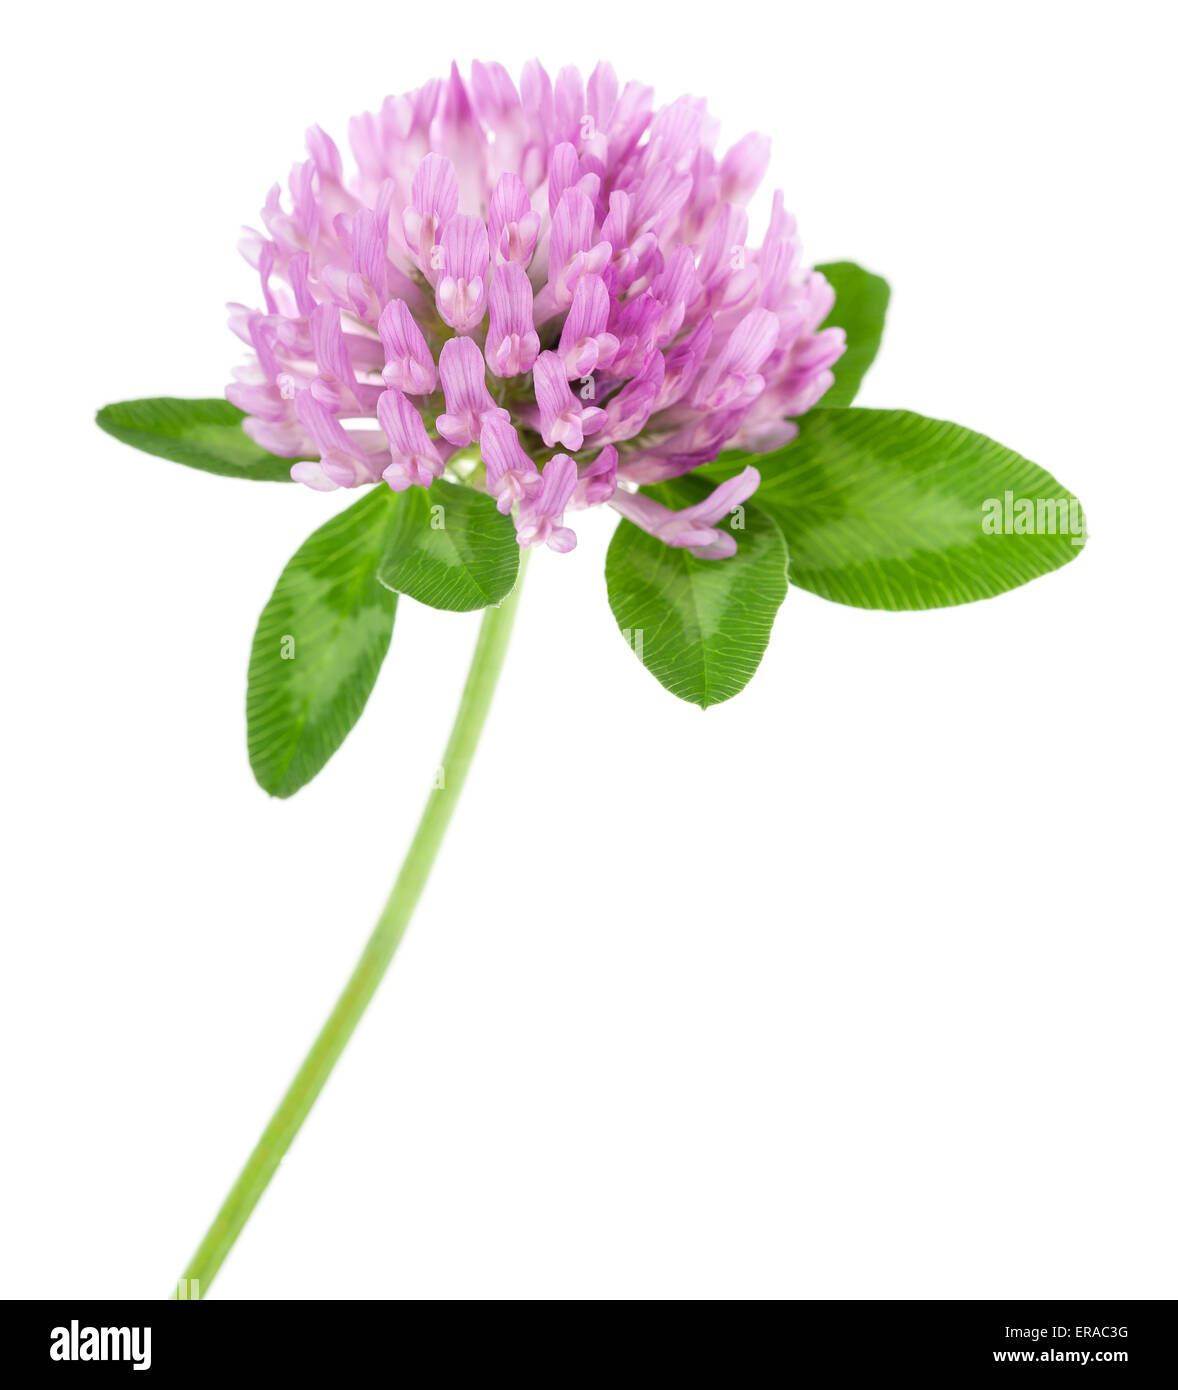 clover flowers isolated on white Stock Photo